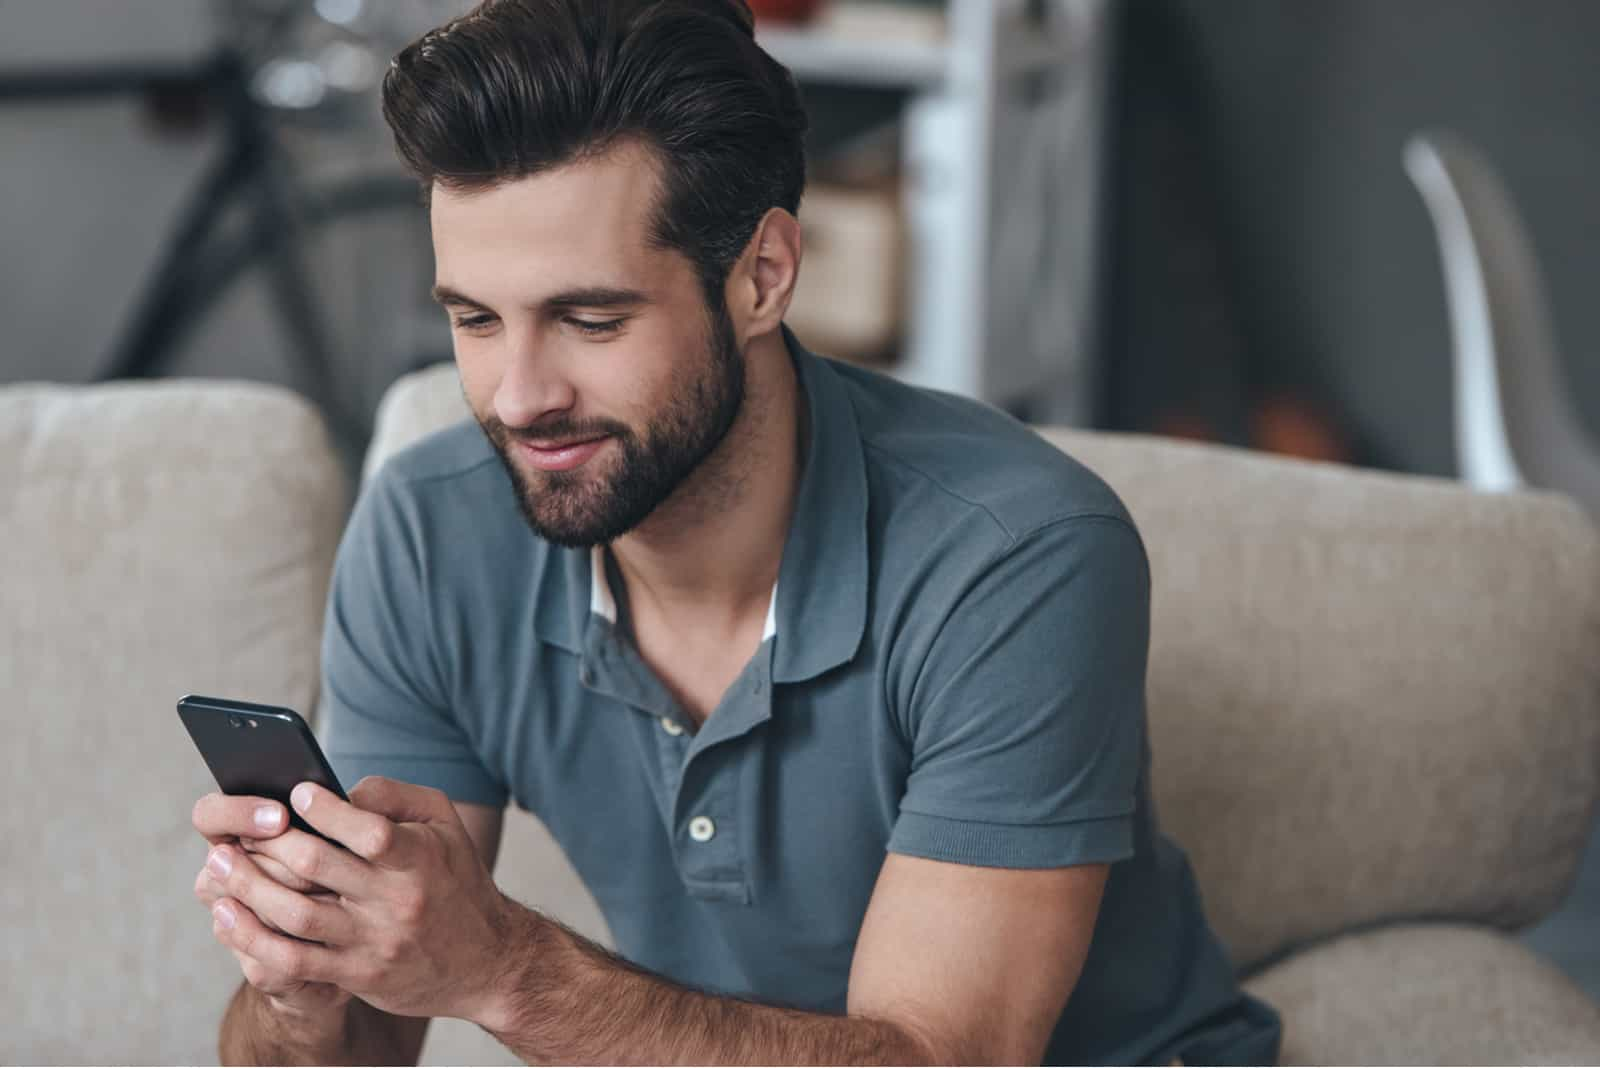 a man sits on the couch and a button on the phone